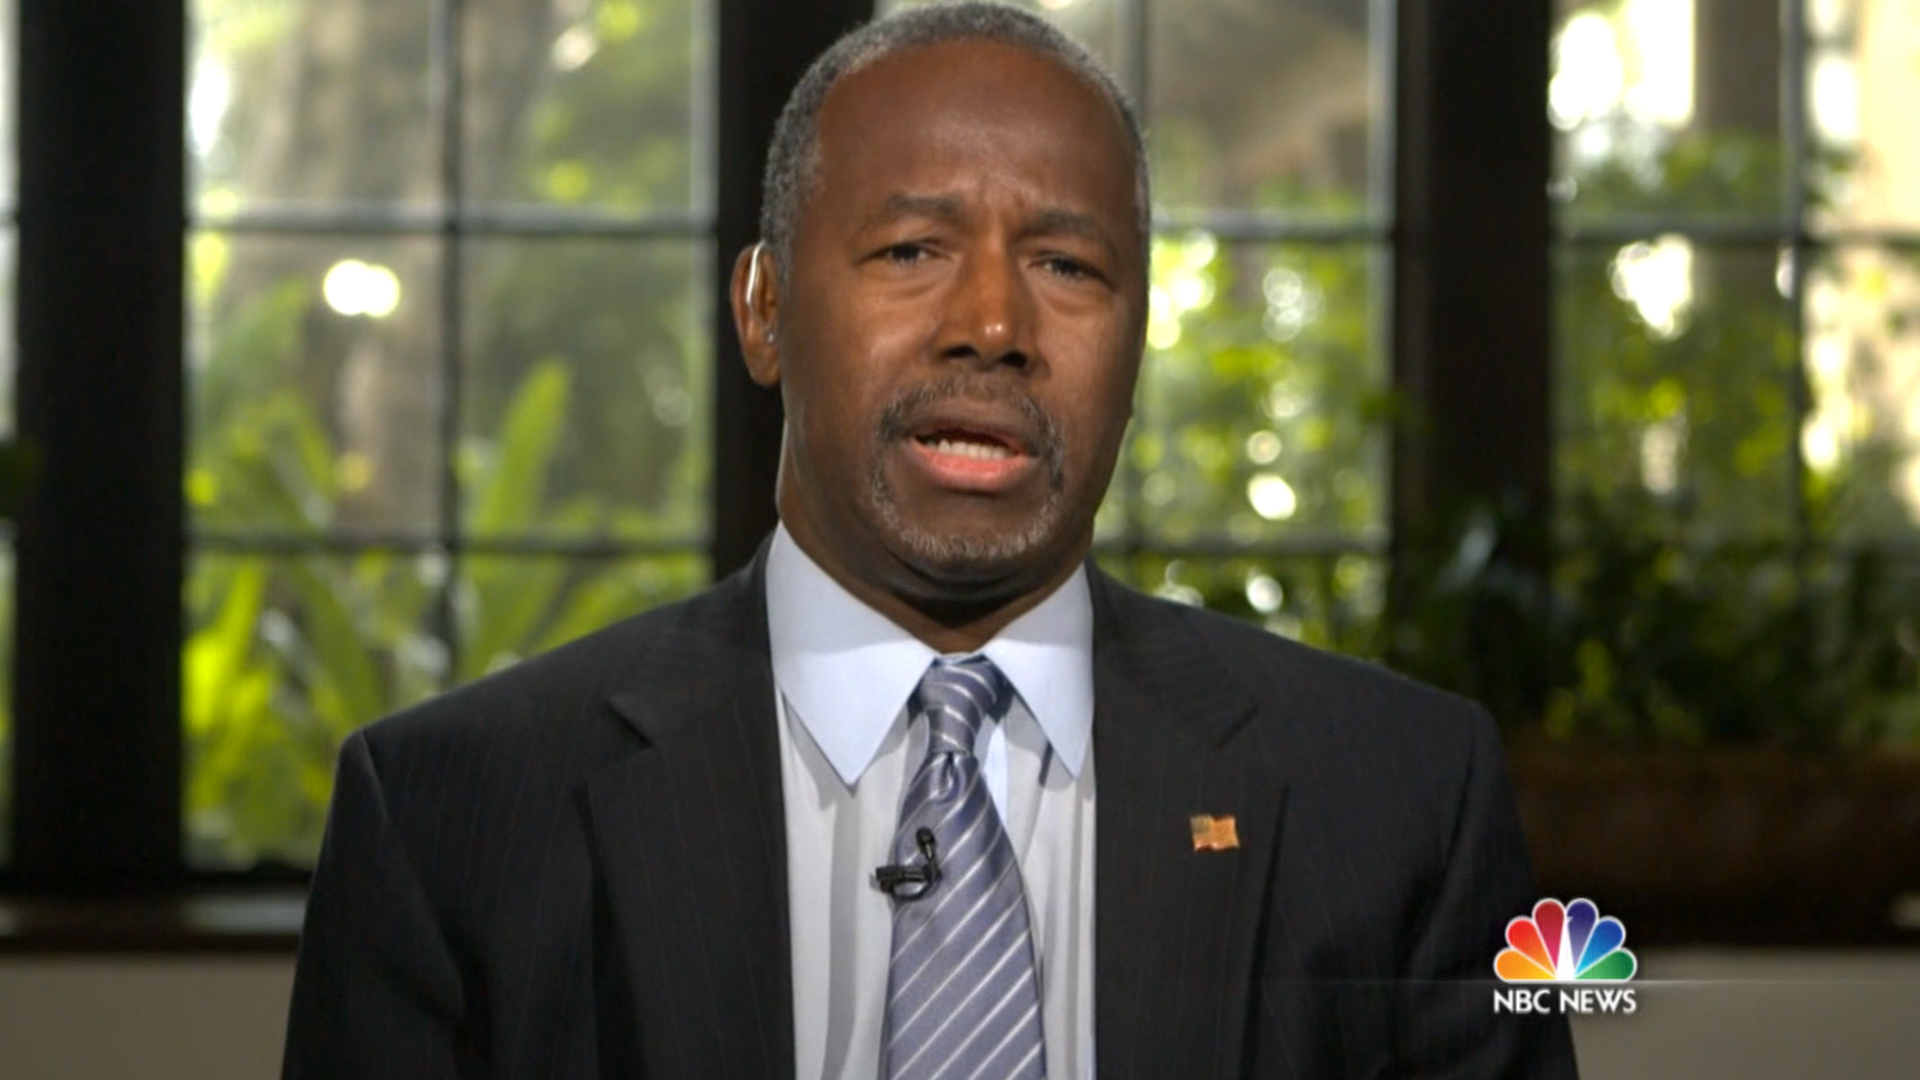 Carson doubles down on anti-Muslim position